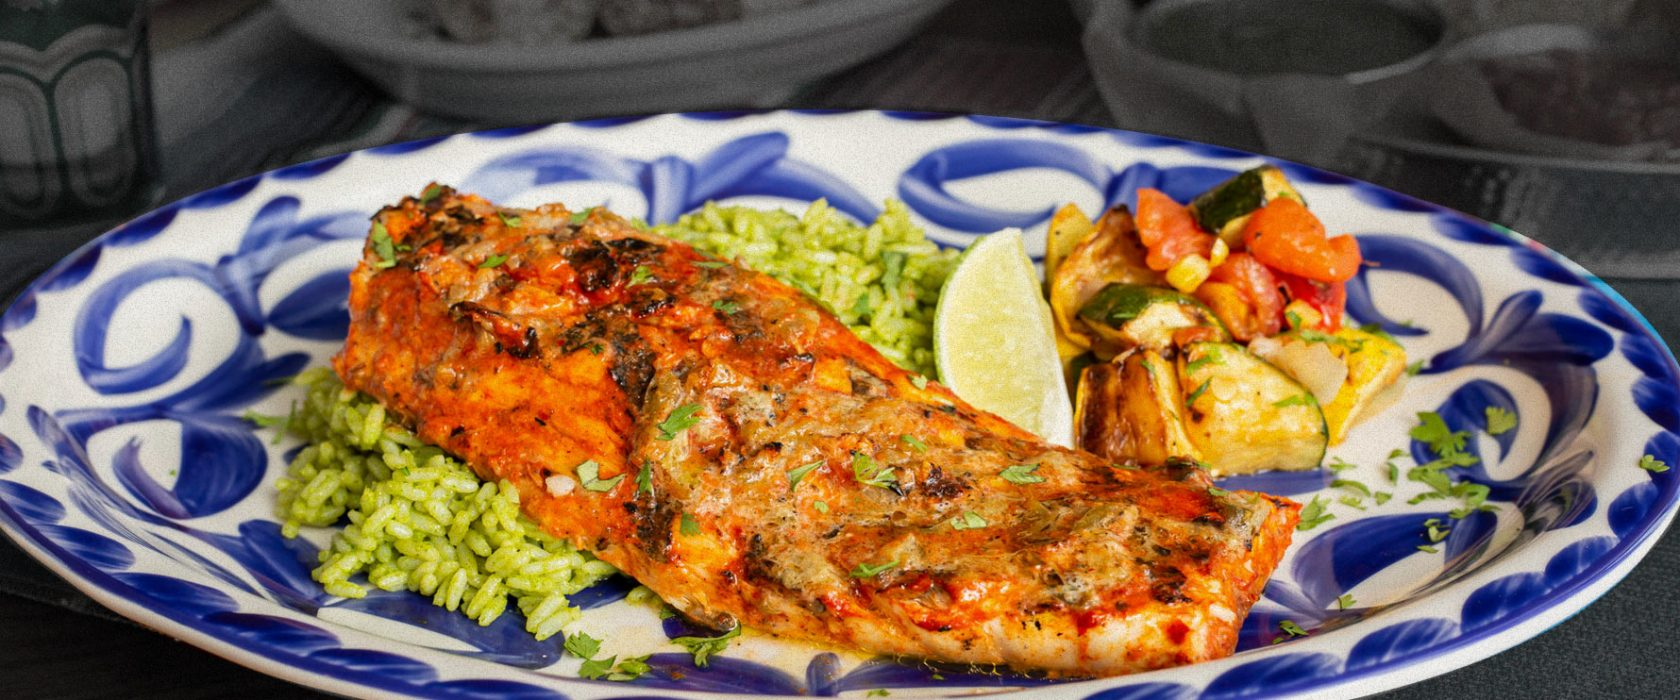 Plated grilled fish over cilantro rice with wedge of lime and grilled veggies.